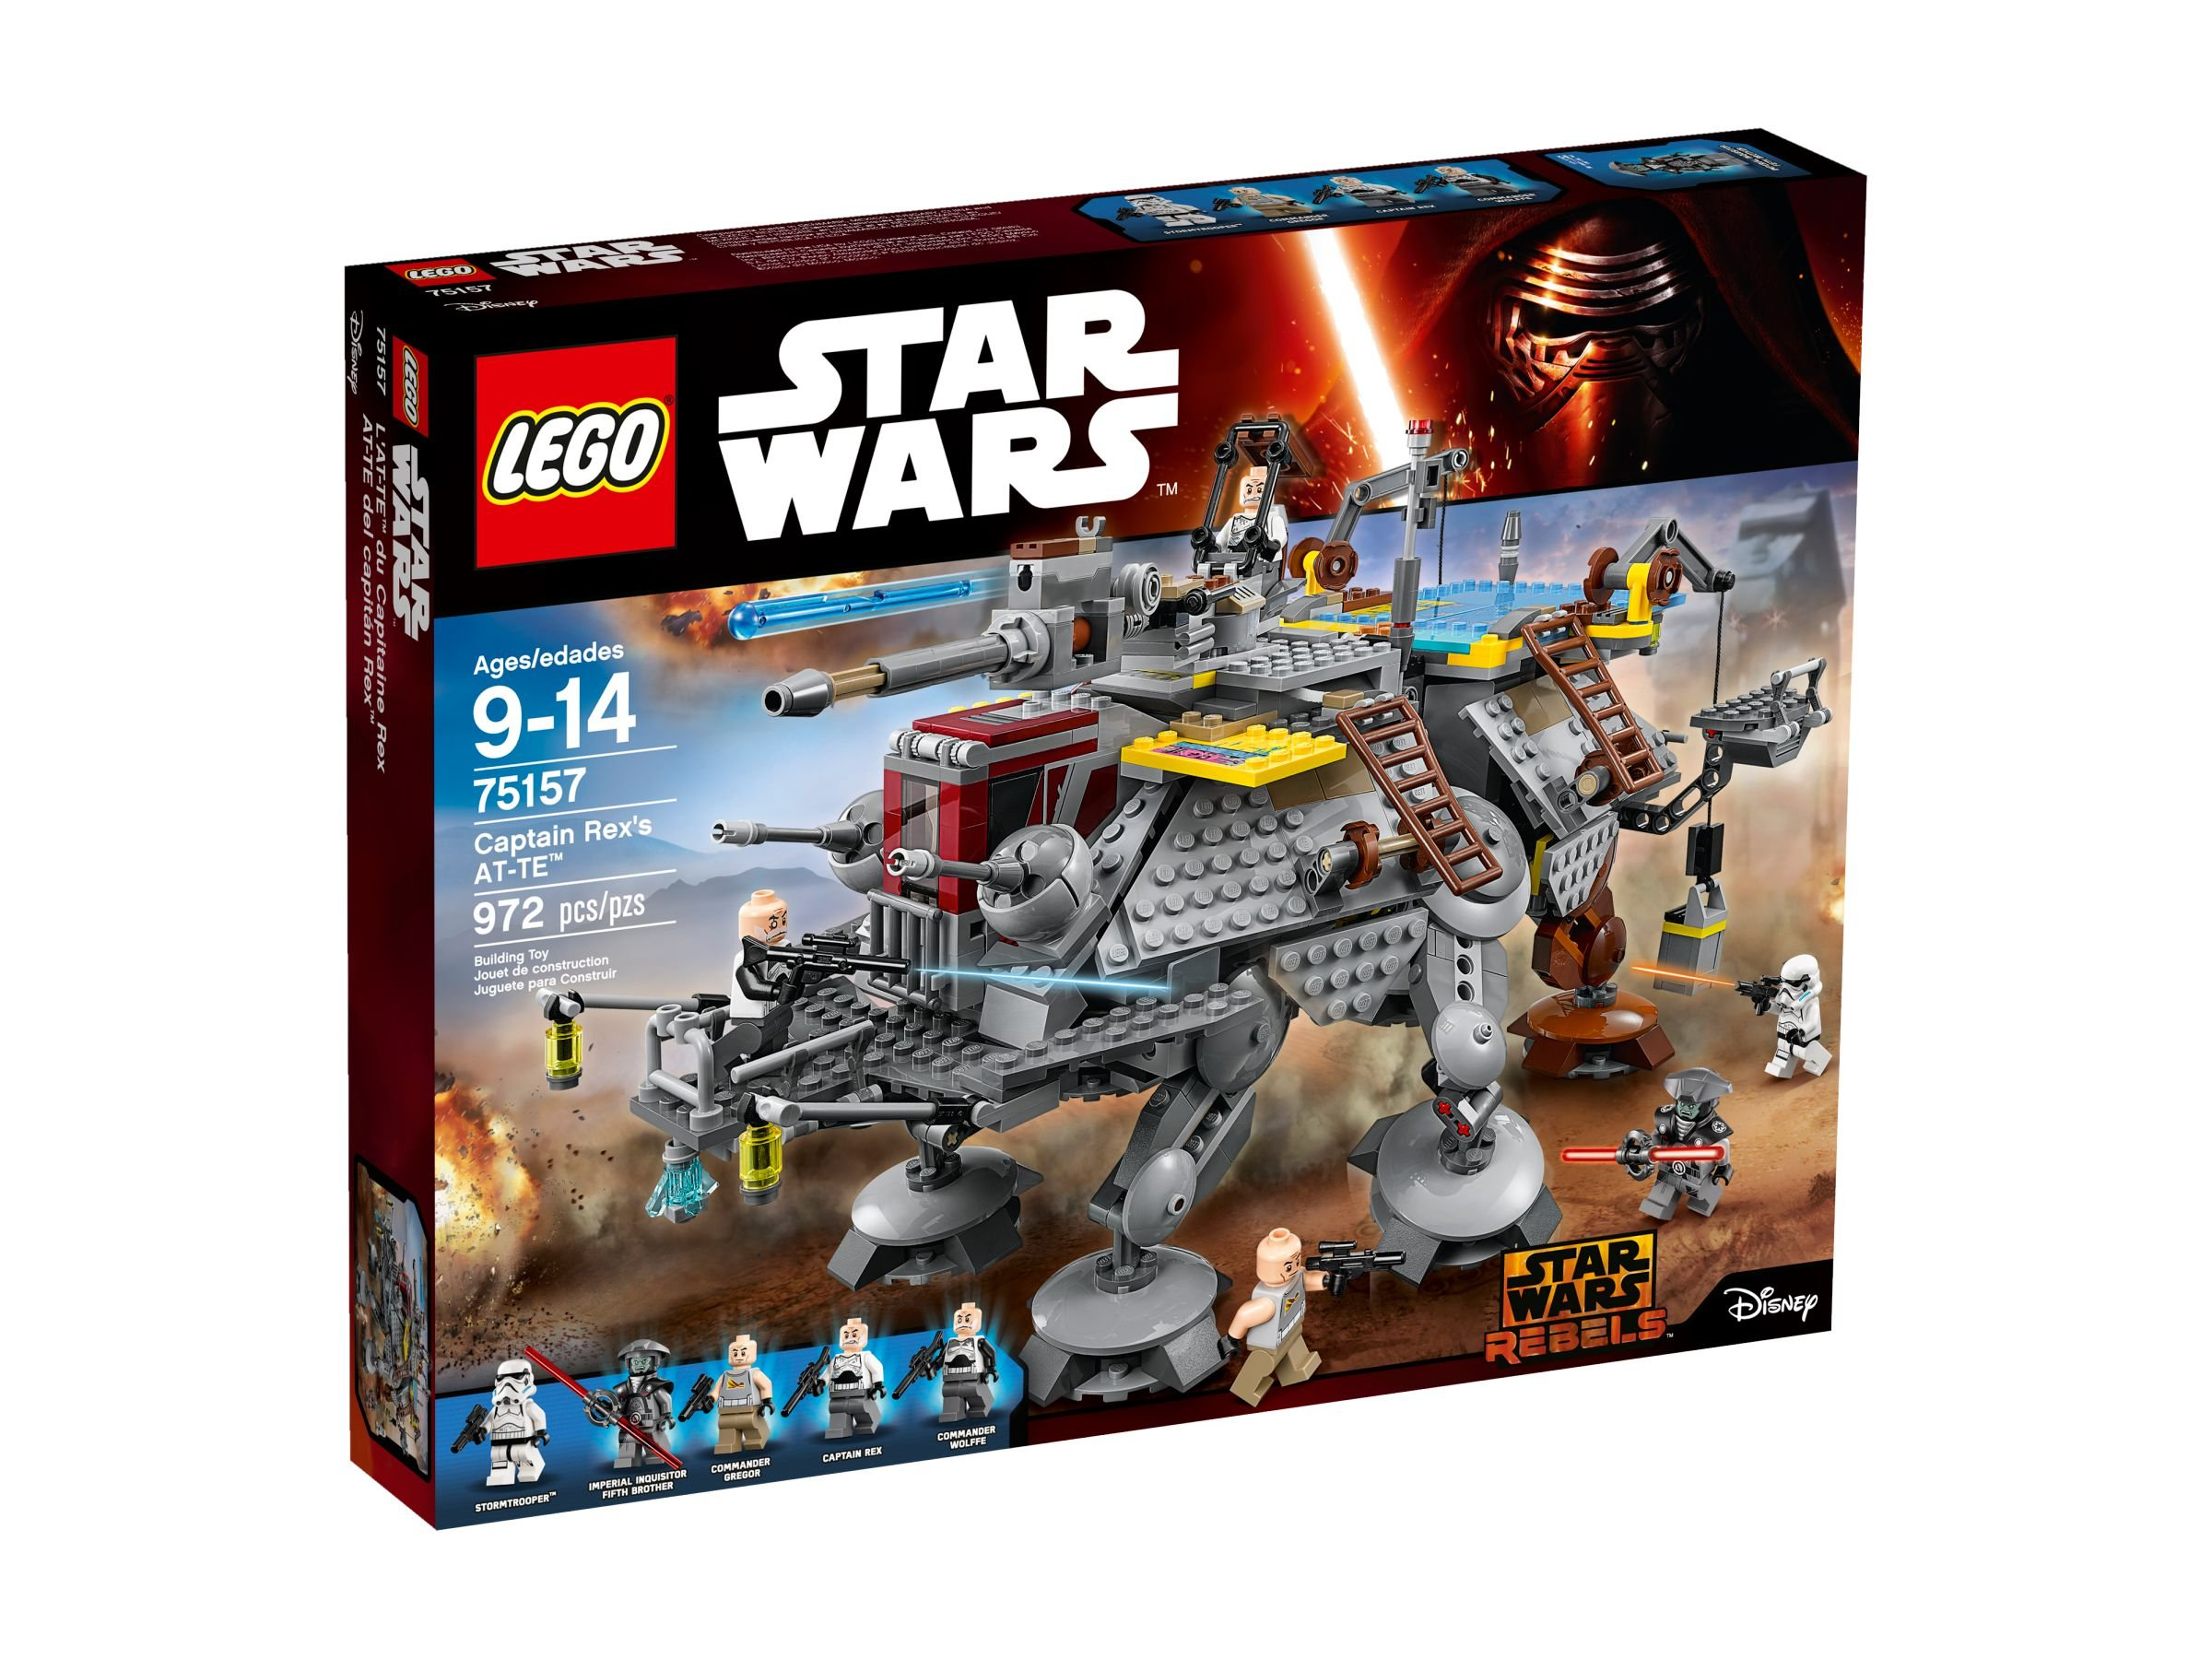 LEGO Star Wars 75157 Captain Rex's AT-TE™ LEGO_75157_alt1.jpg